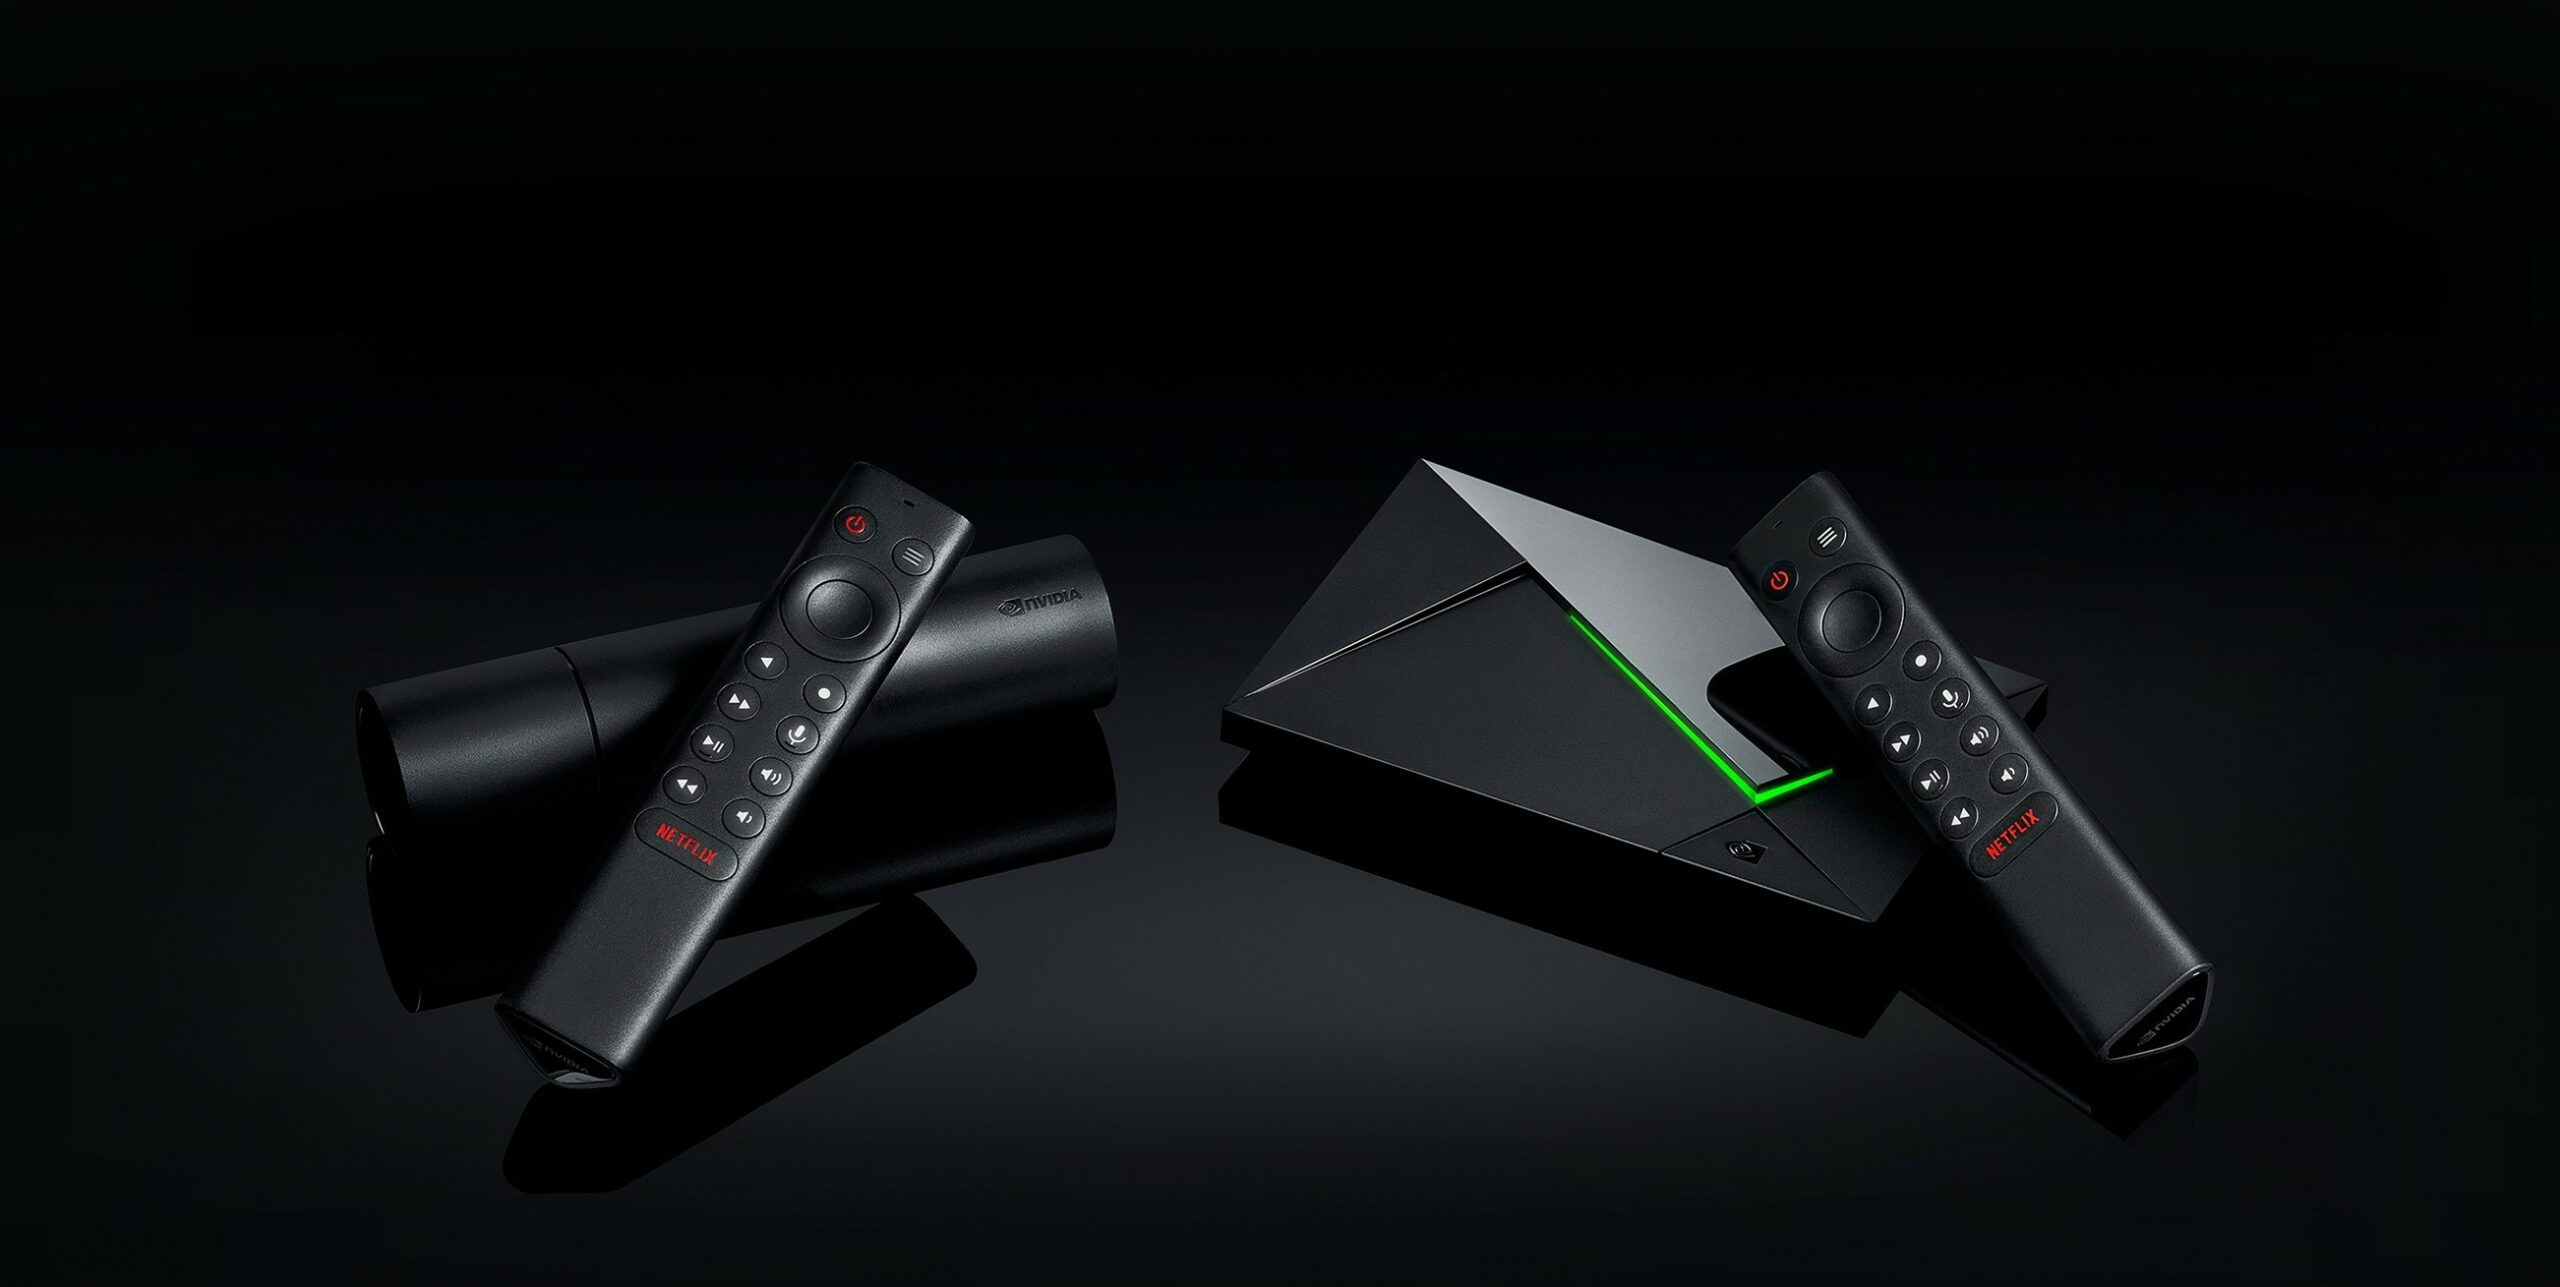 Links der neue Shield TV, rechts der Shield TV Pro. (Foto: Nvidia)